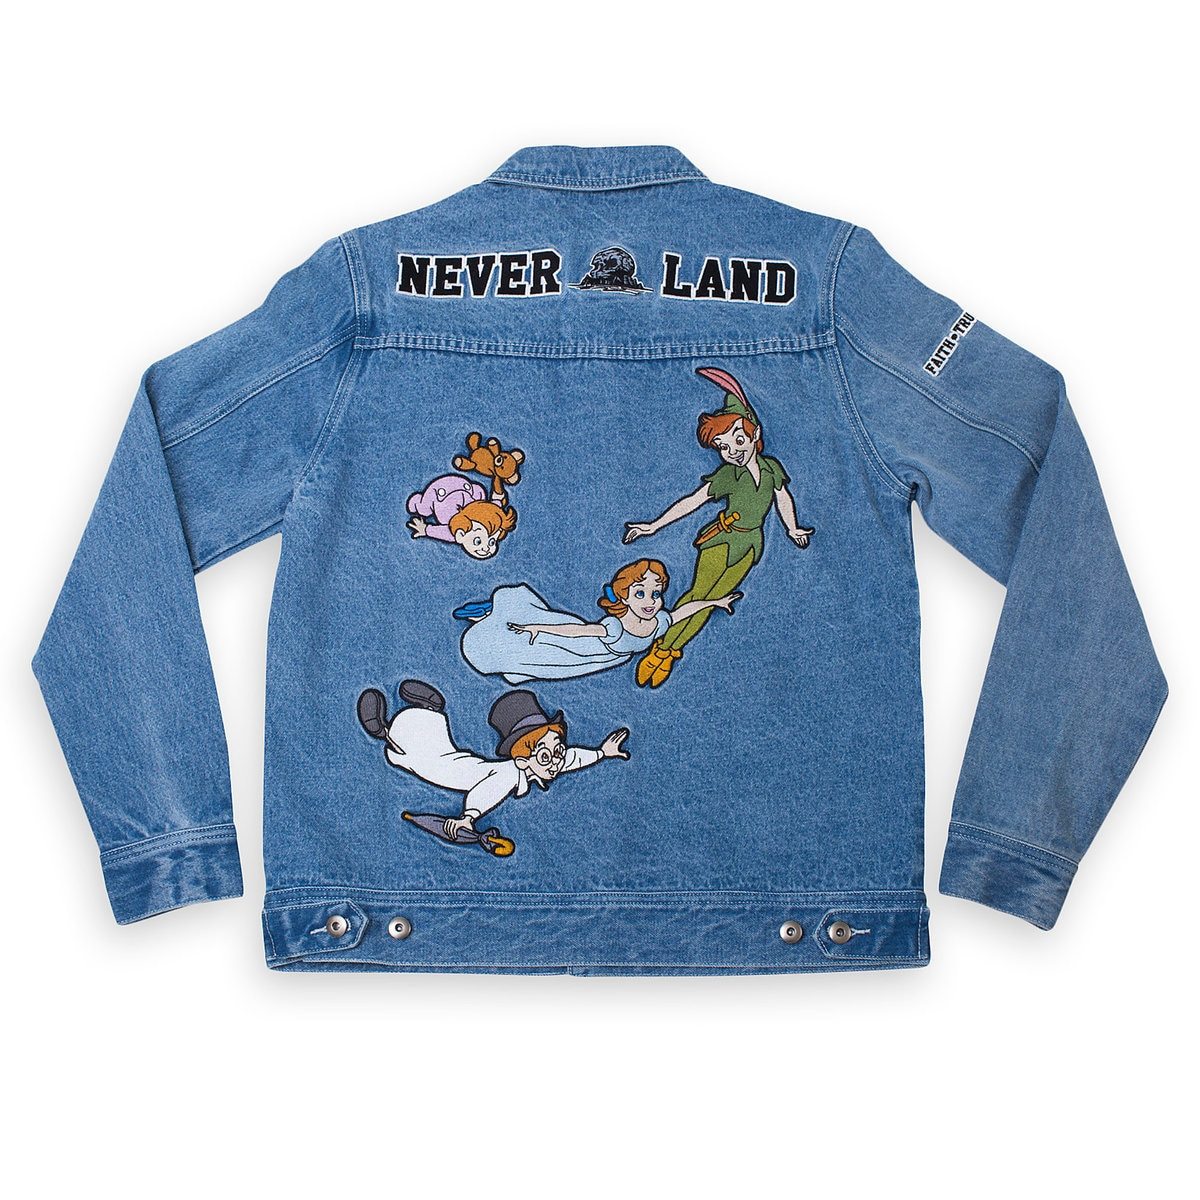 828aa48ea2a7d Product Image of Peter Pan Never Land Jacket for Adults by Cakeworthy   1